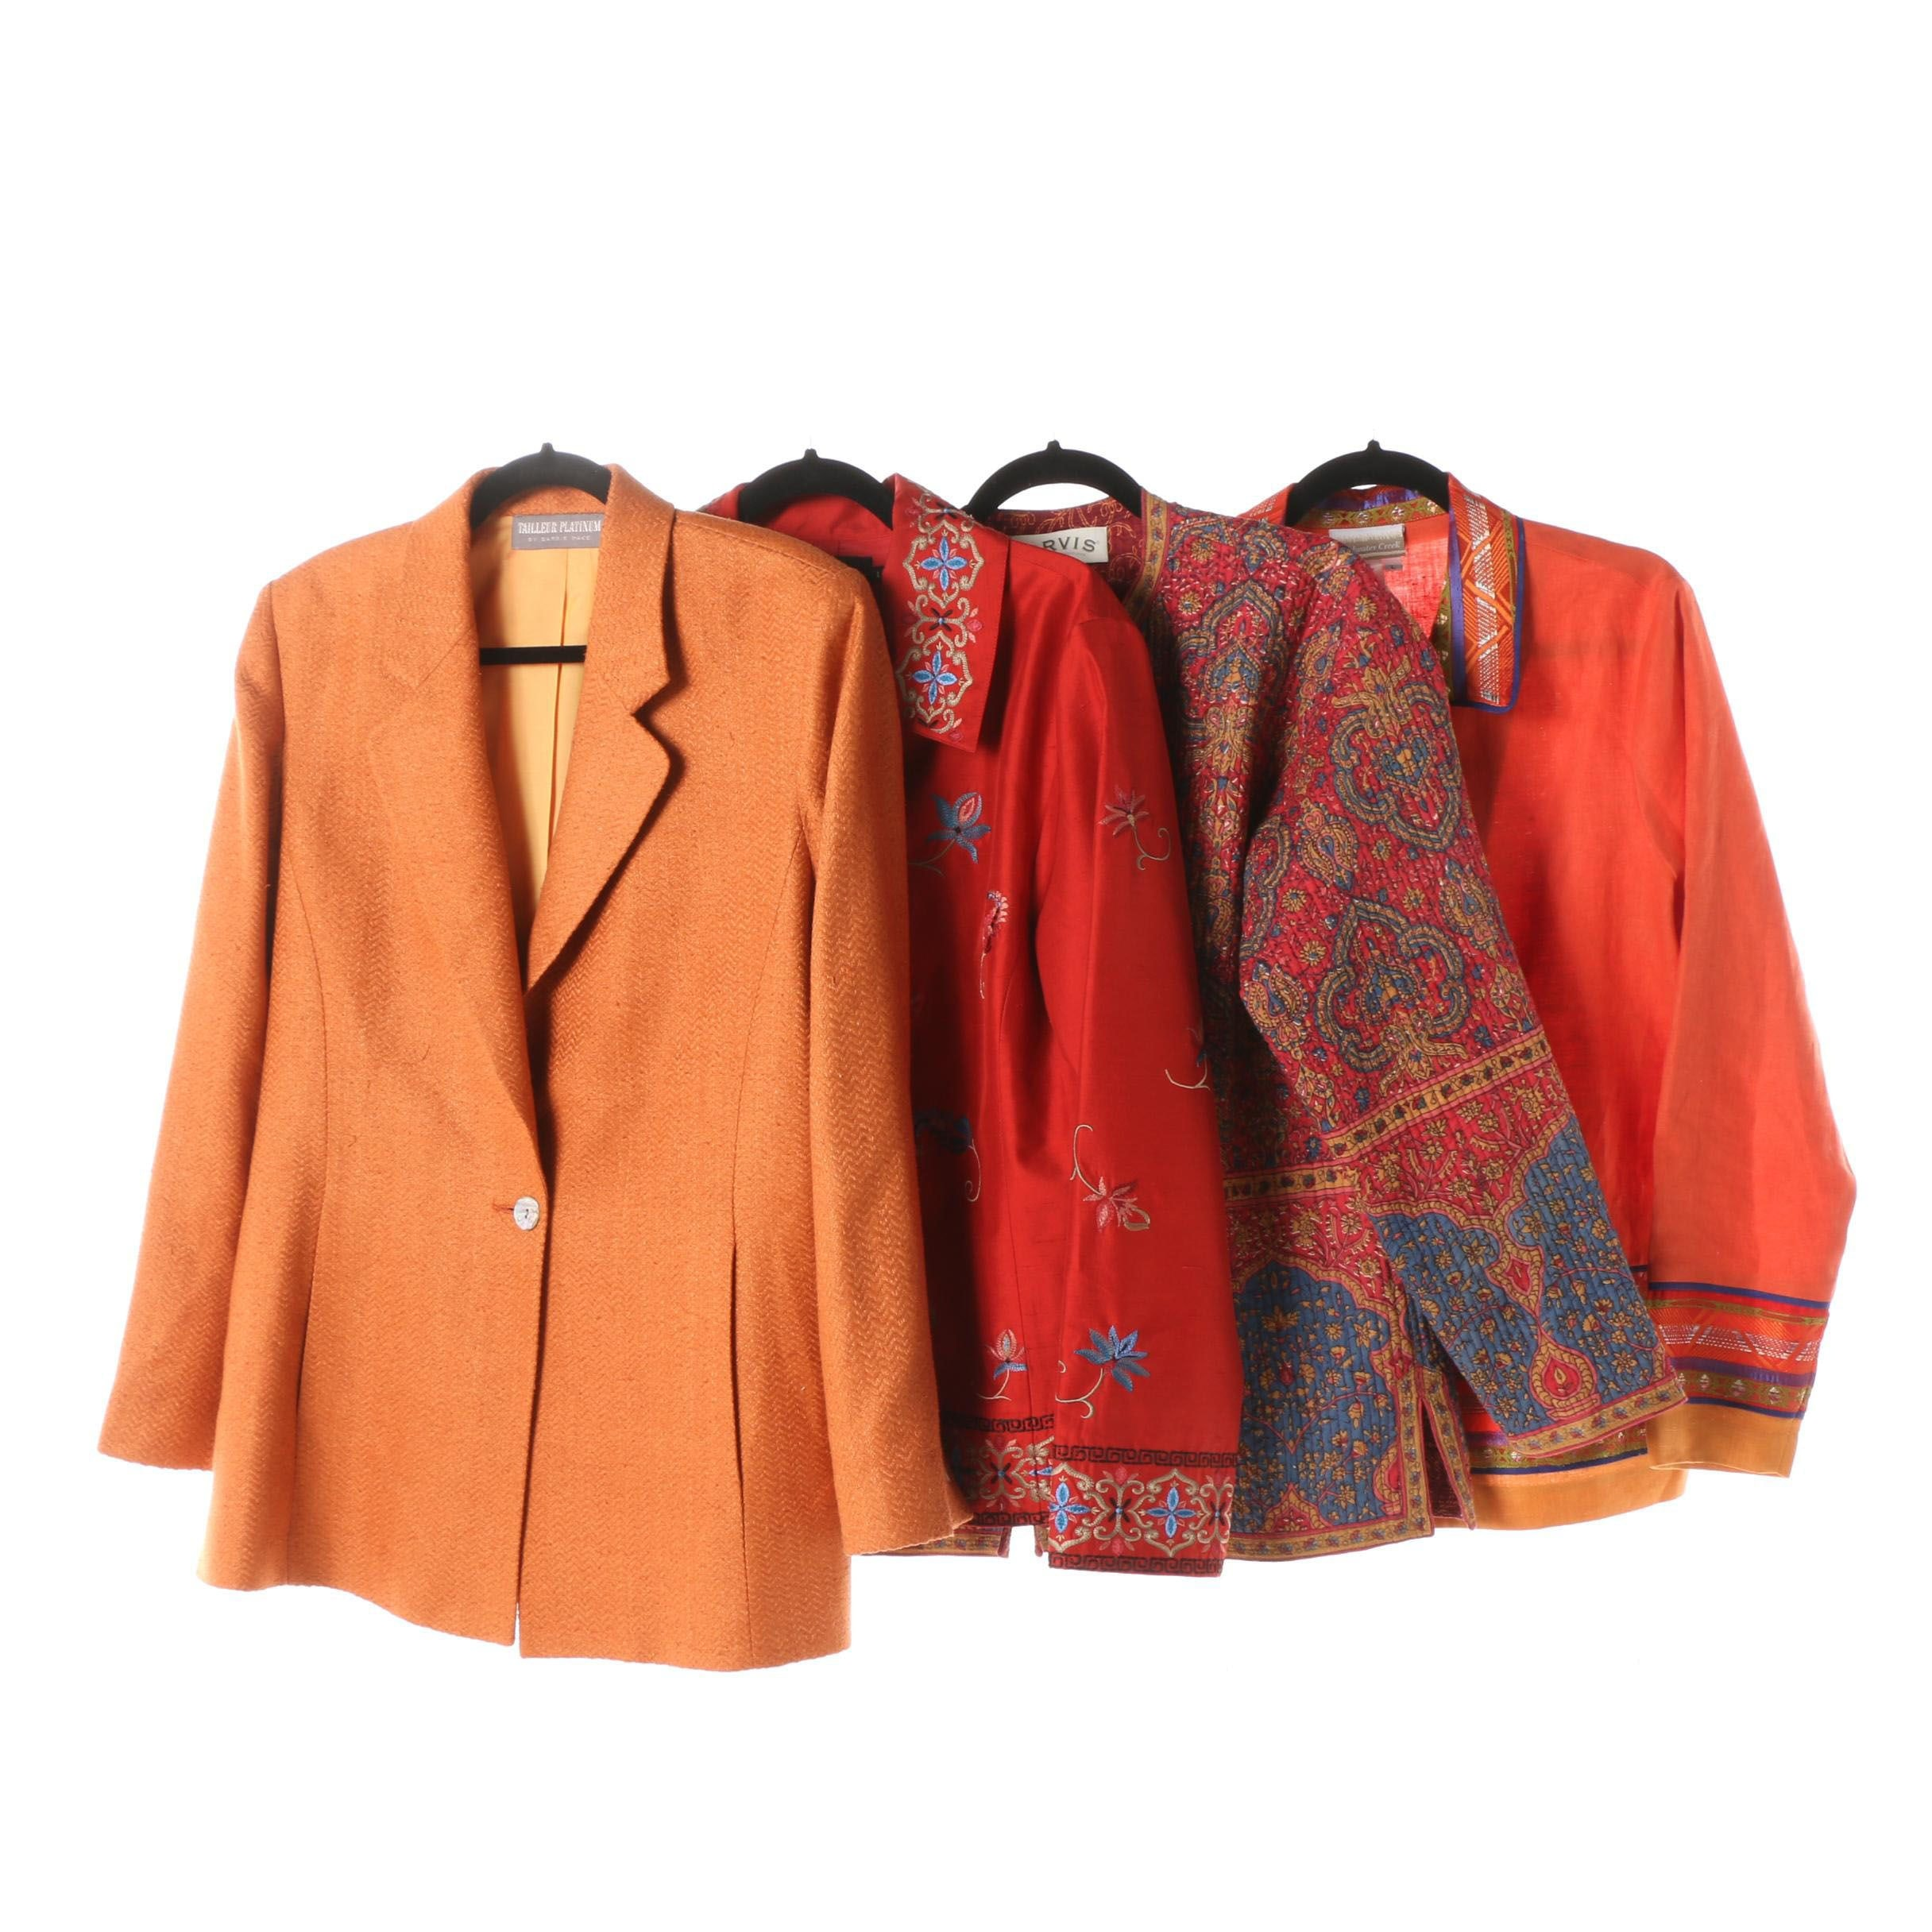 Women's Jackets including Orvis, Coldwater Creek and Icelandic Design